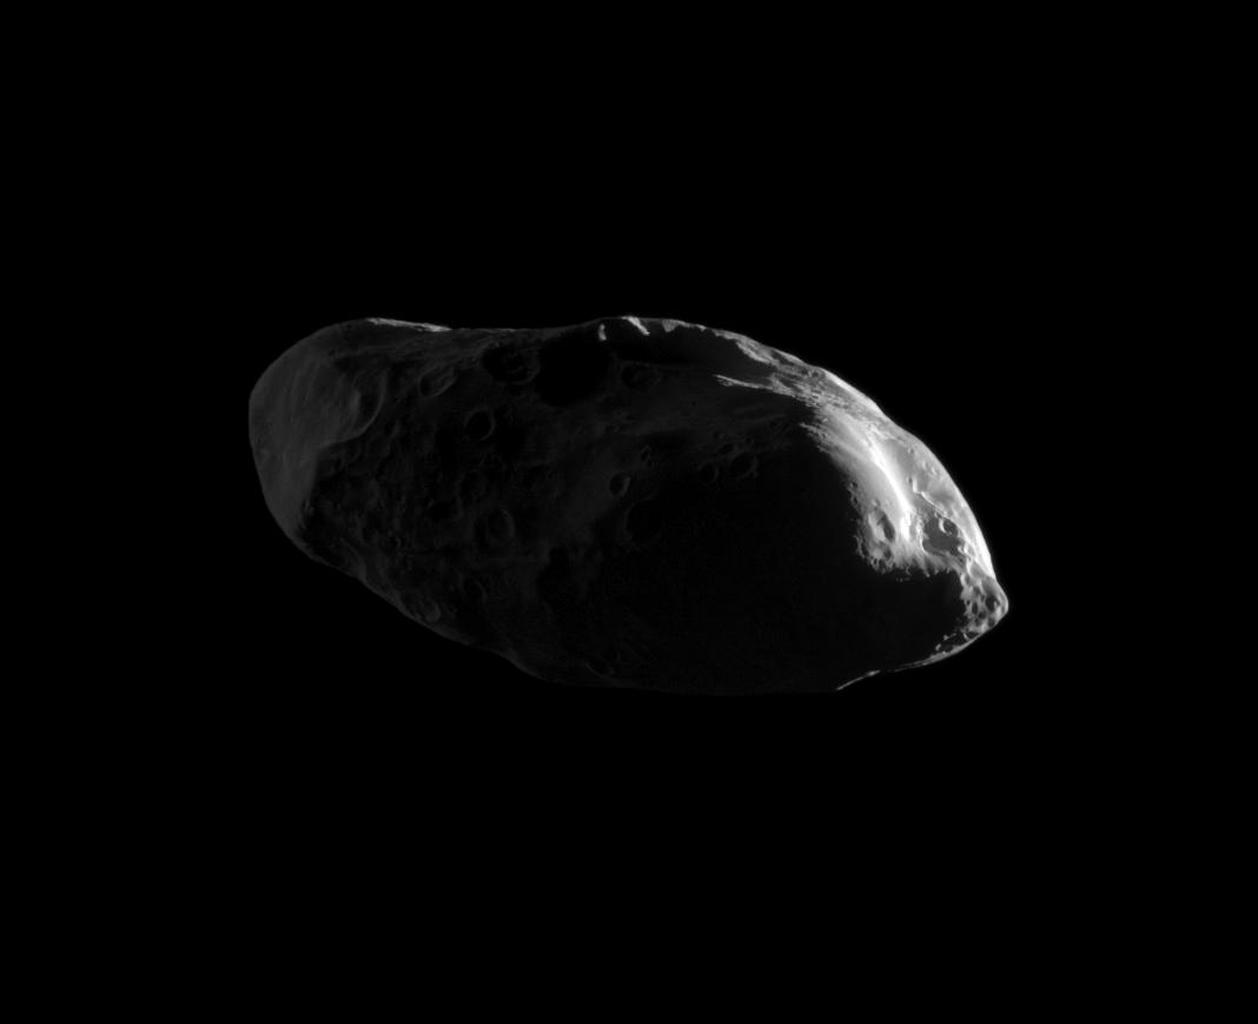 Appearing like eyes on a potato, craters cover the dimly lit surface of the moon Prometheus in this high-resolution image from NASA's Cassini spacecraft's early 2010 flyby.